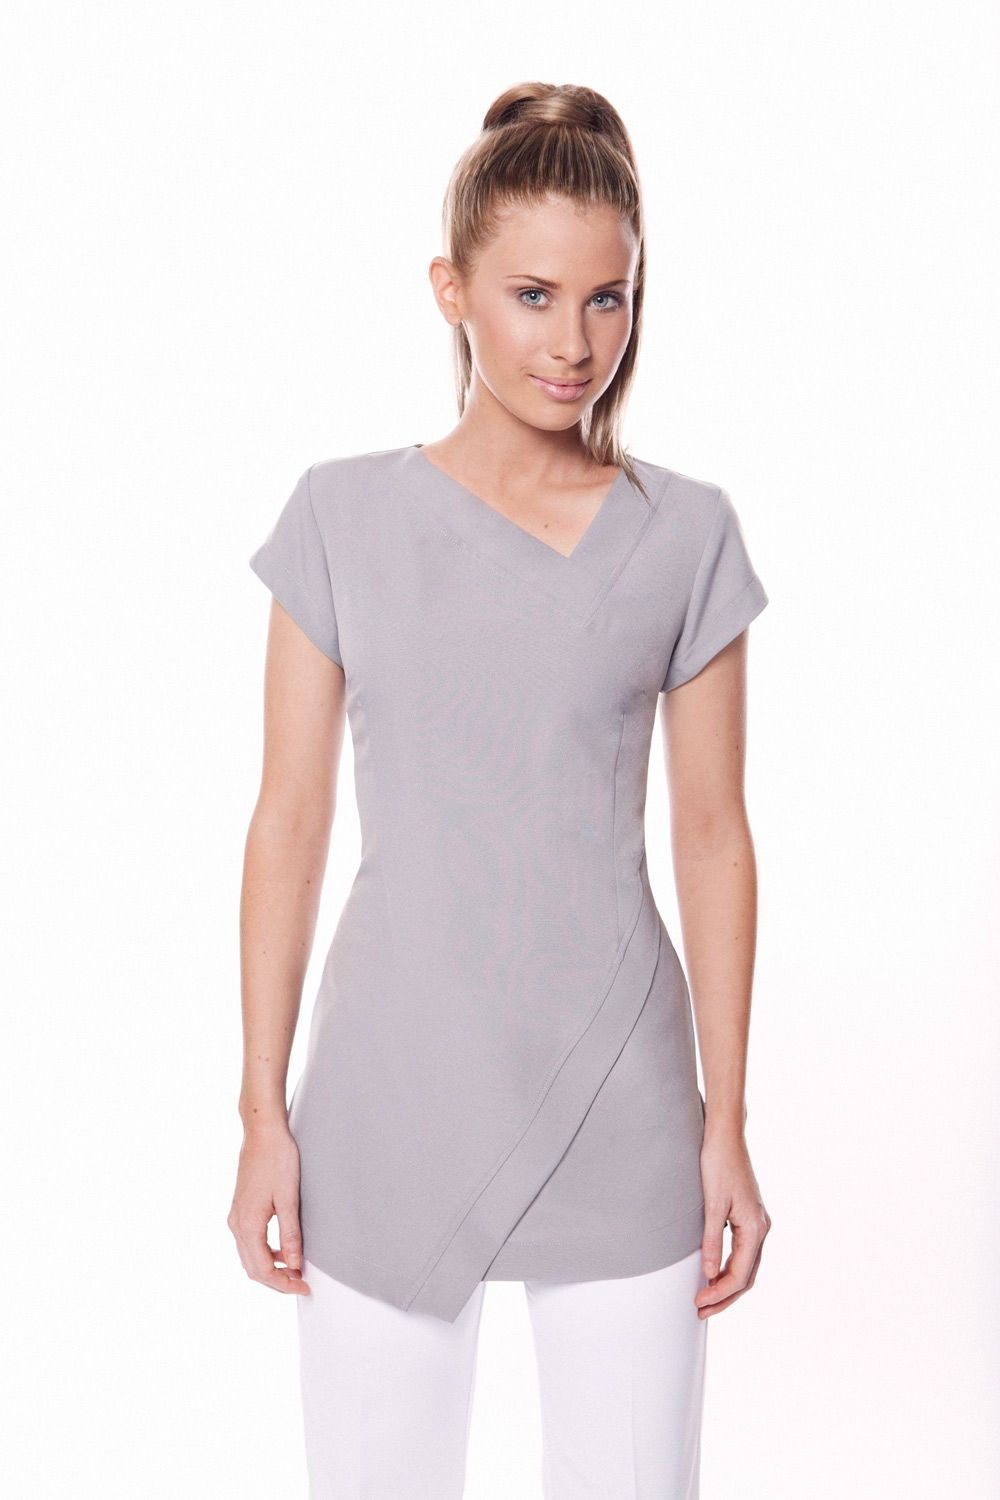 f9f8228b1864c SPA 14 Tunic Work Uniform | Krystle Skin | Spa uniform, Salon ...